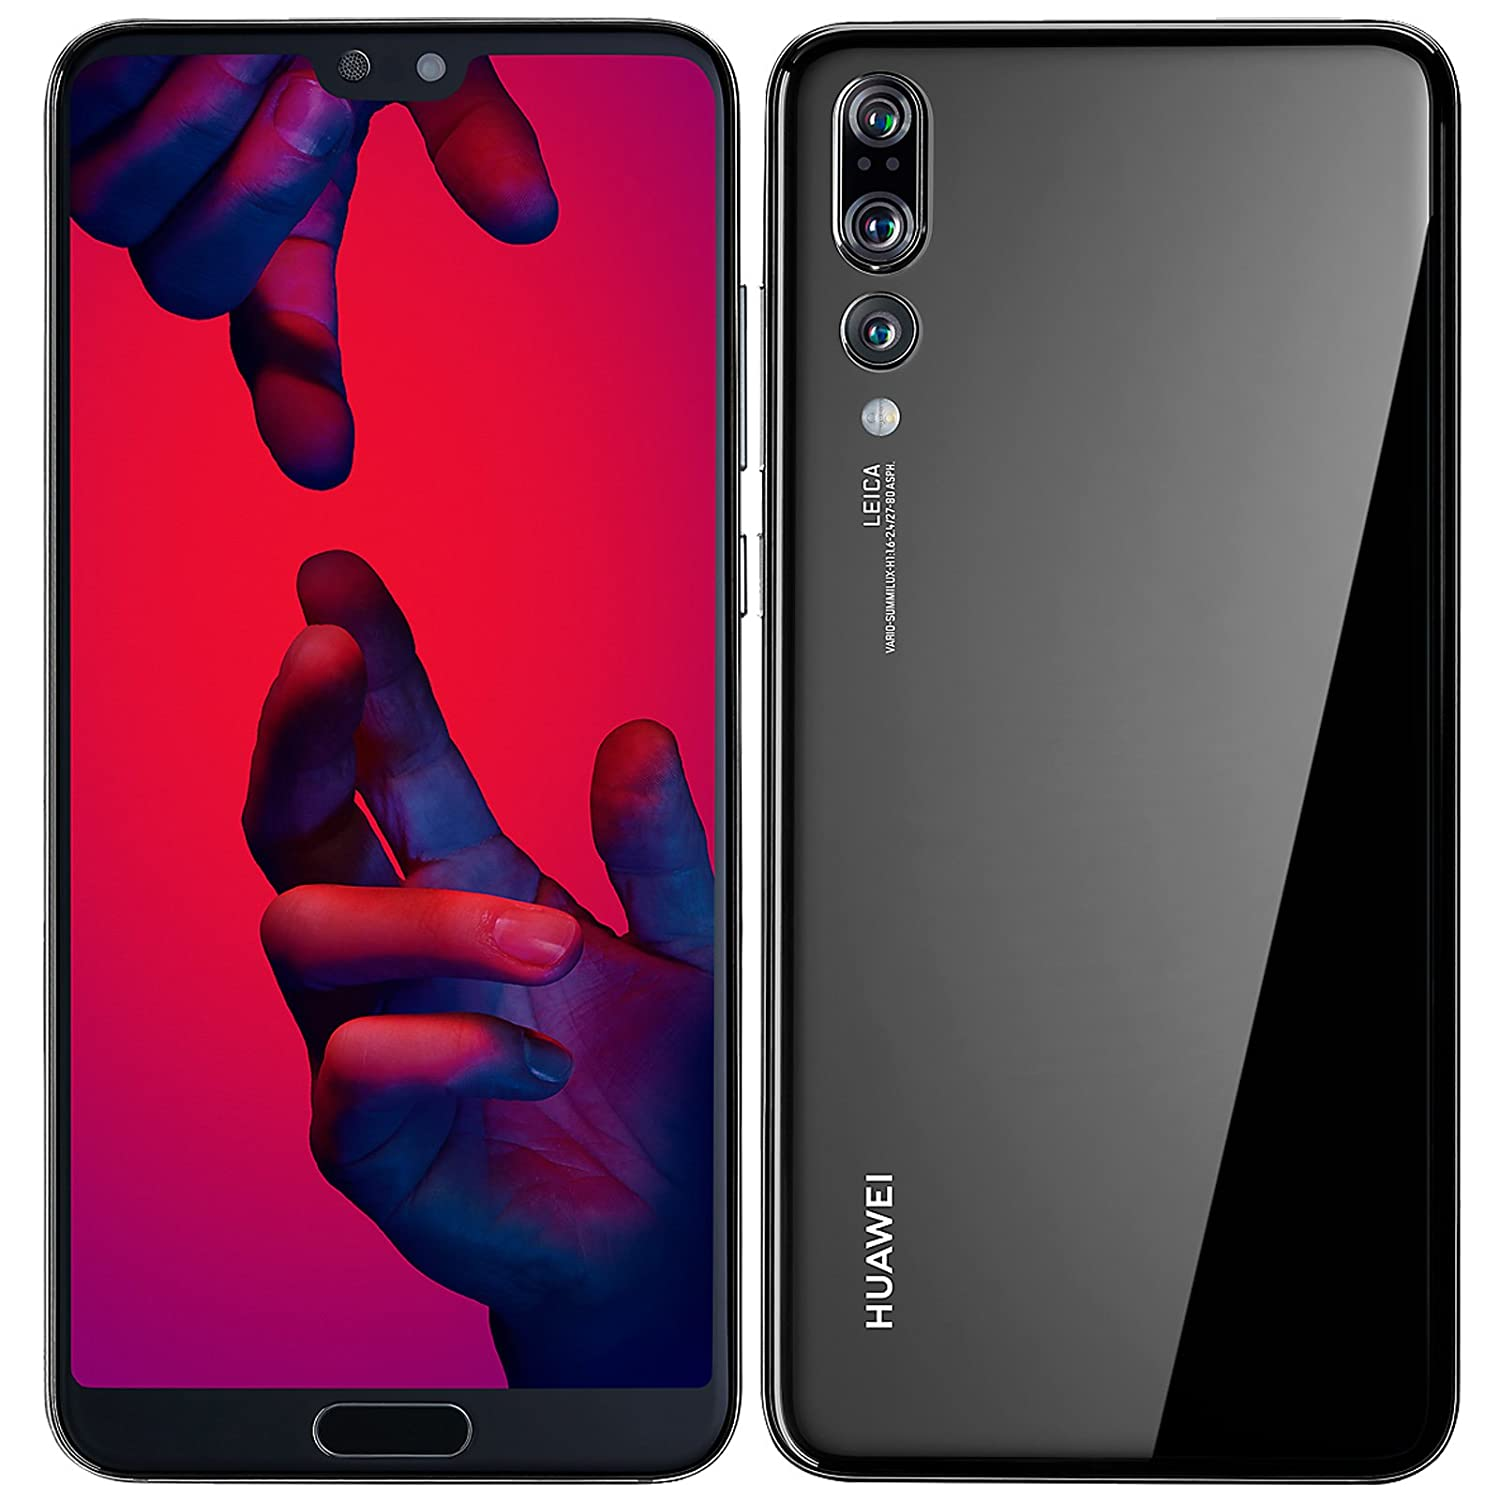 Huawei P20 Pro 128GB Single-SIM Factory Unlocked 4G/LTE Smartphone